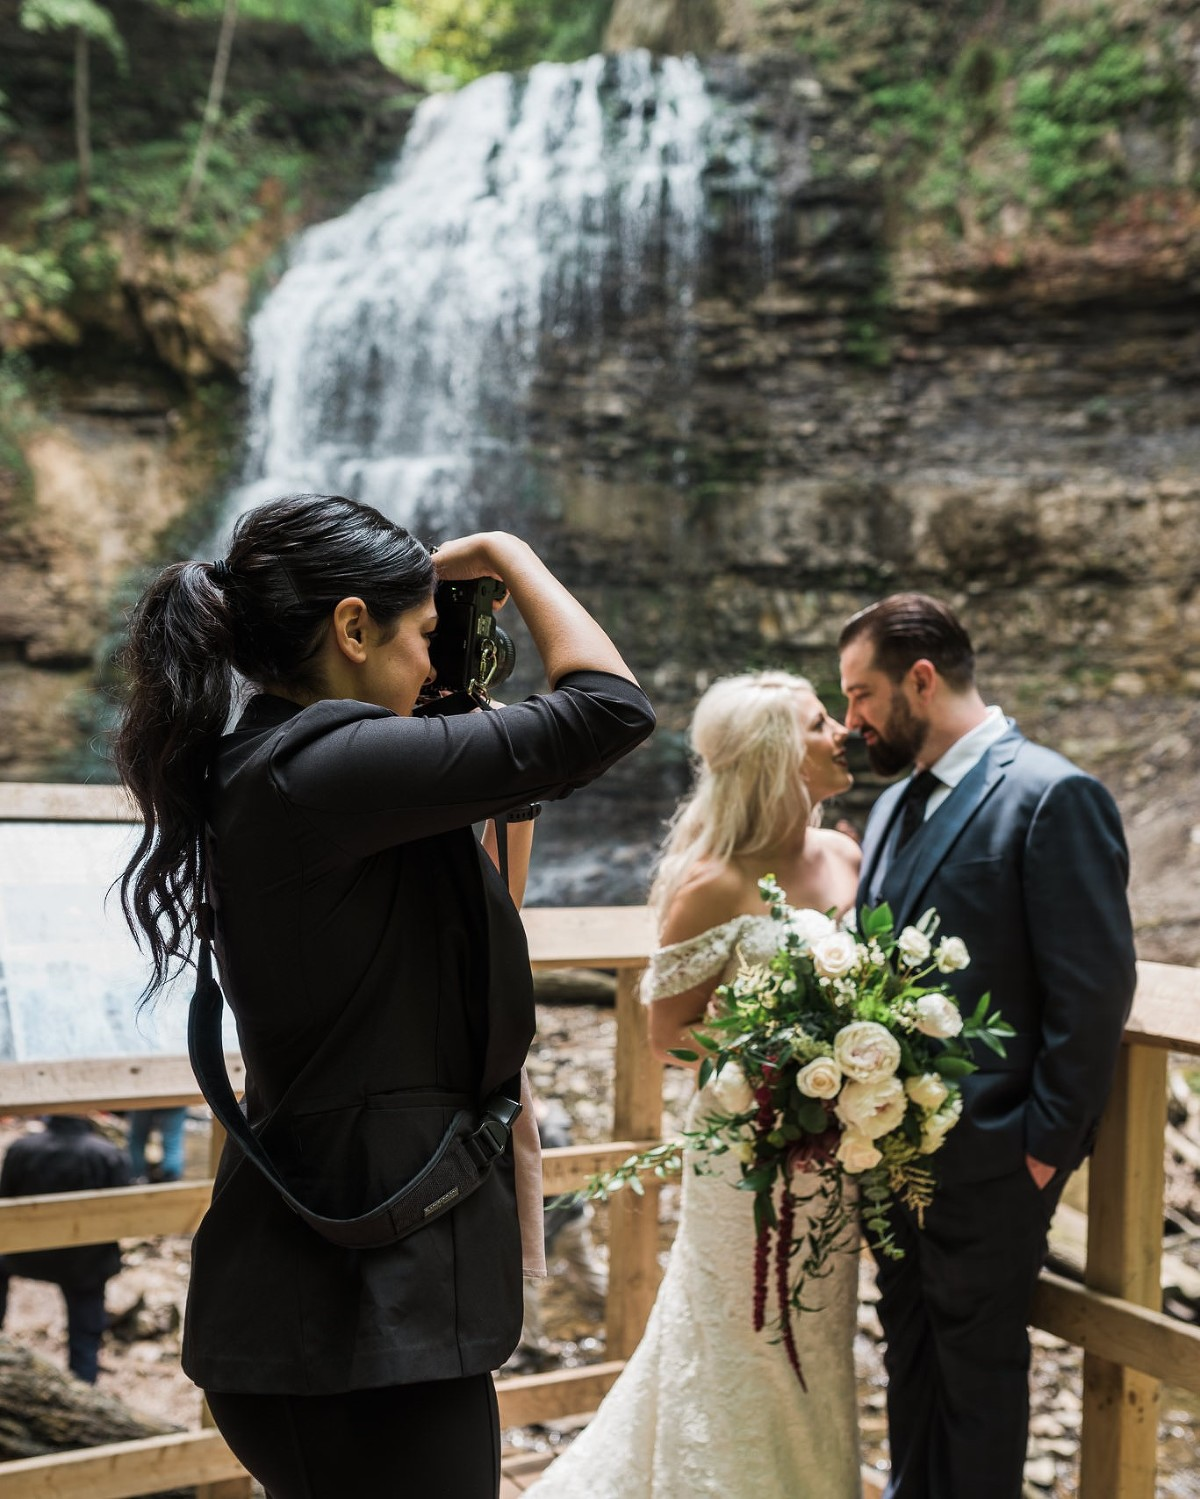 Photographer taking photo of bride and groom in front of a waterfall in Hamilton